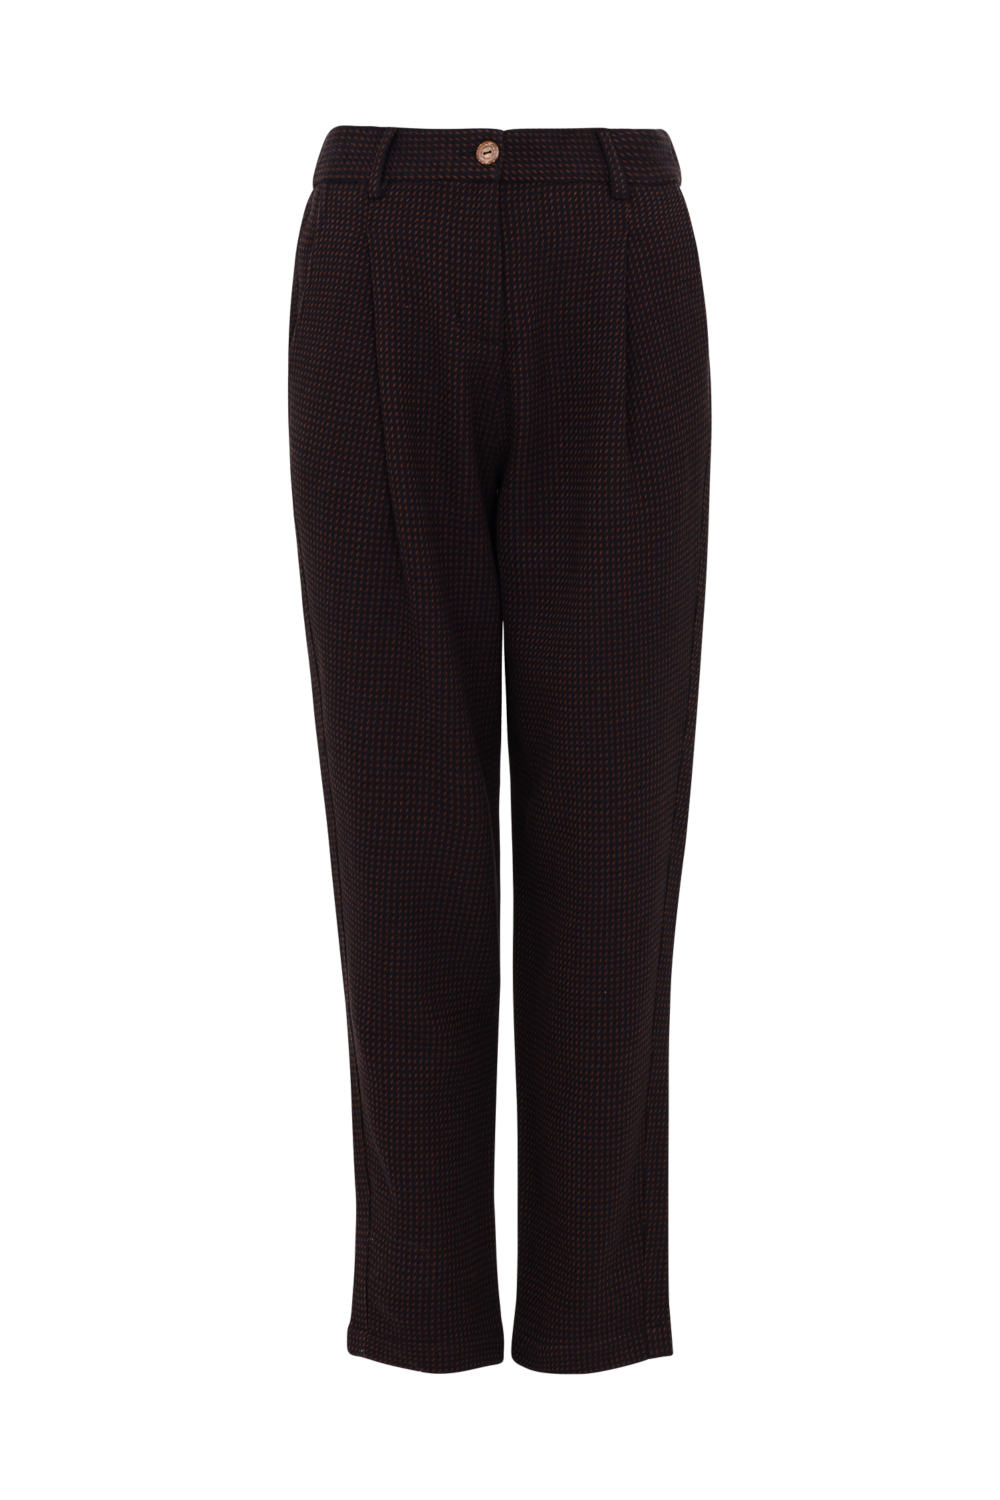 Roberta Organic Fashion Peopletree Hose Annis Black 4